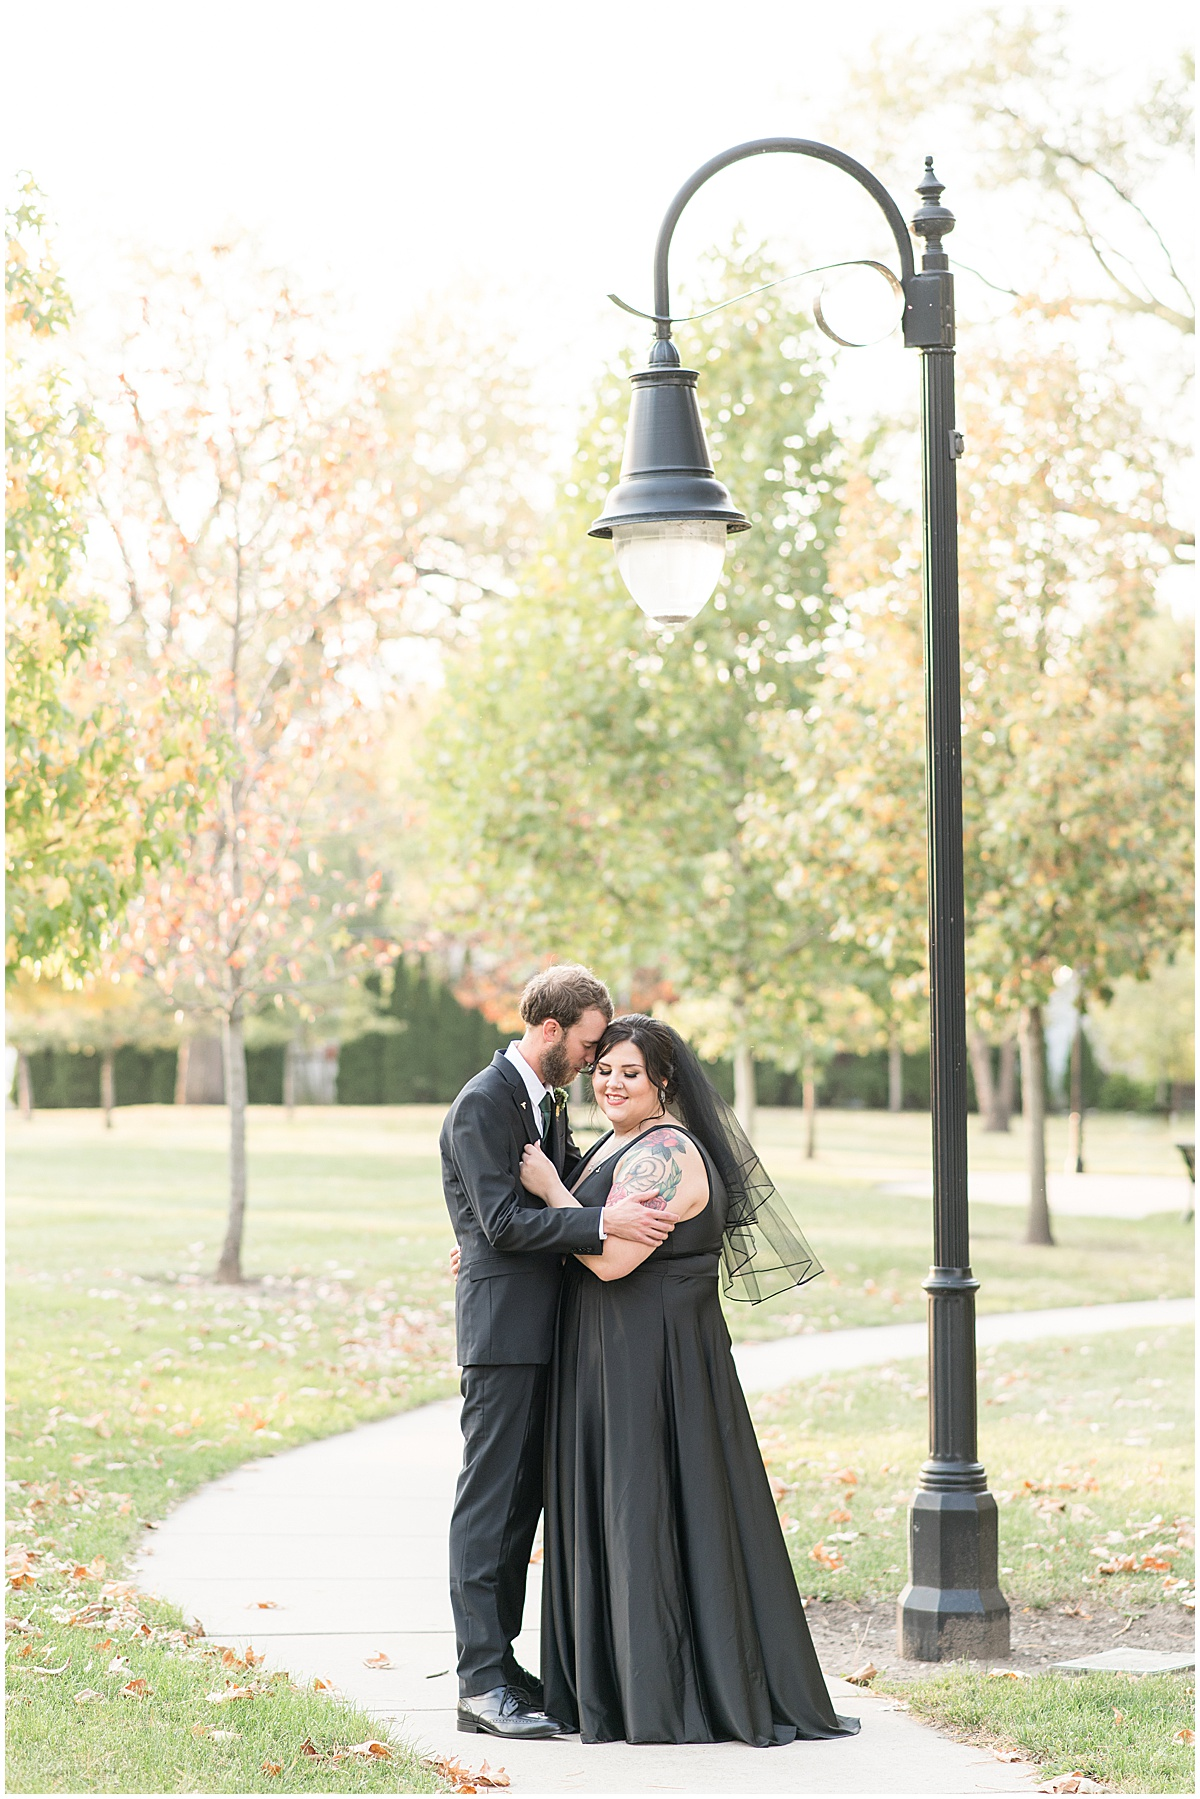 Bride wearing black wedding dress for just married portraits